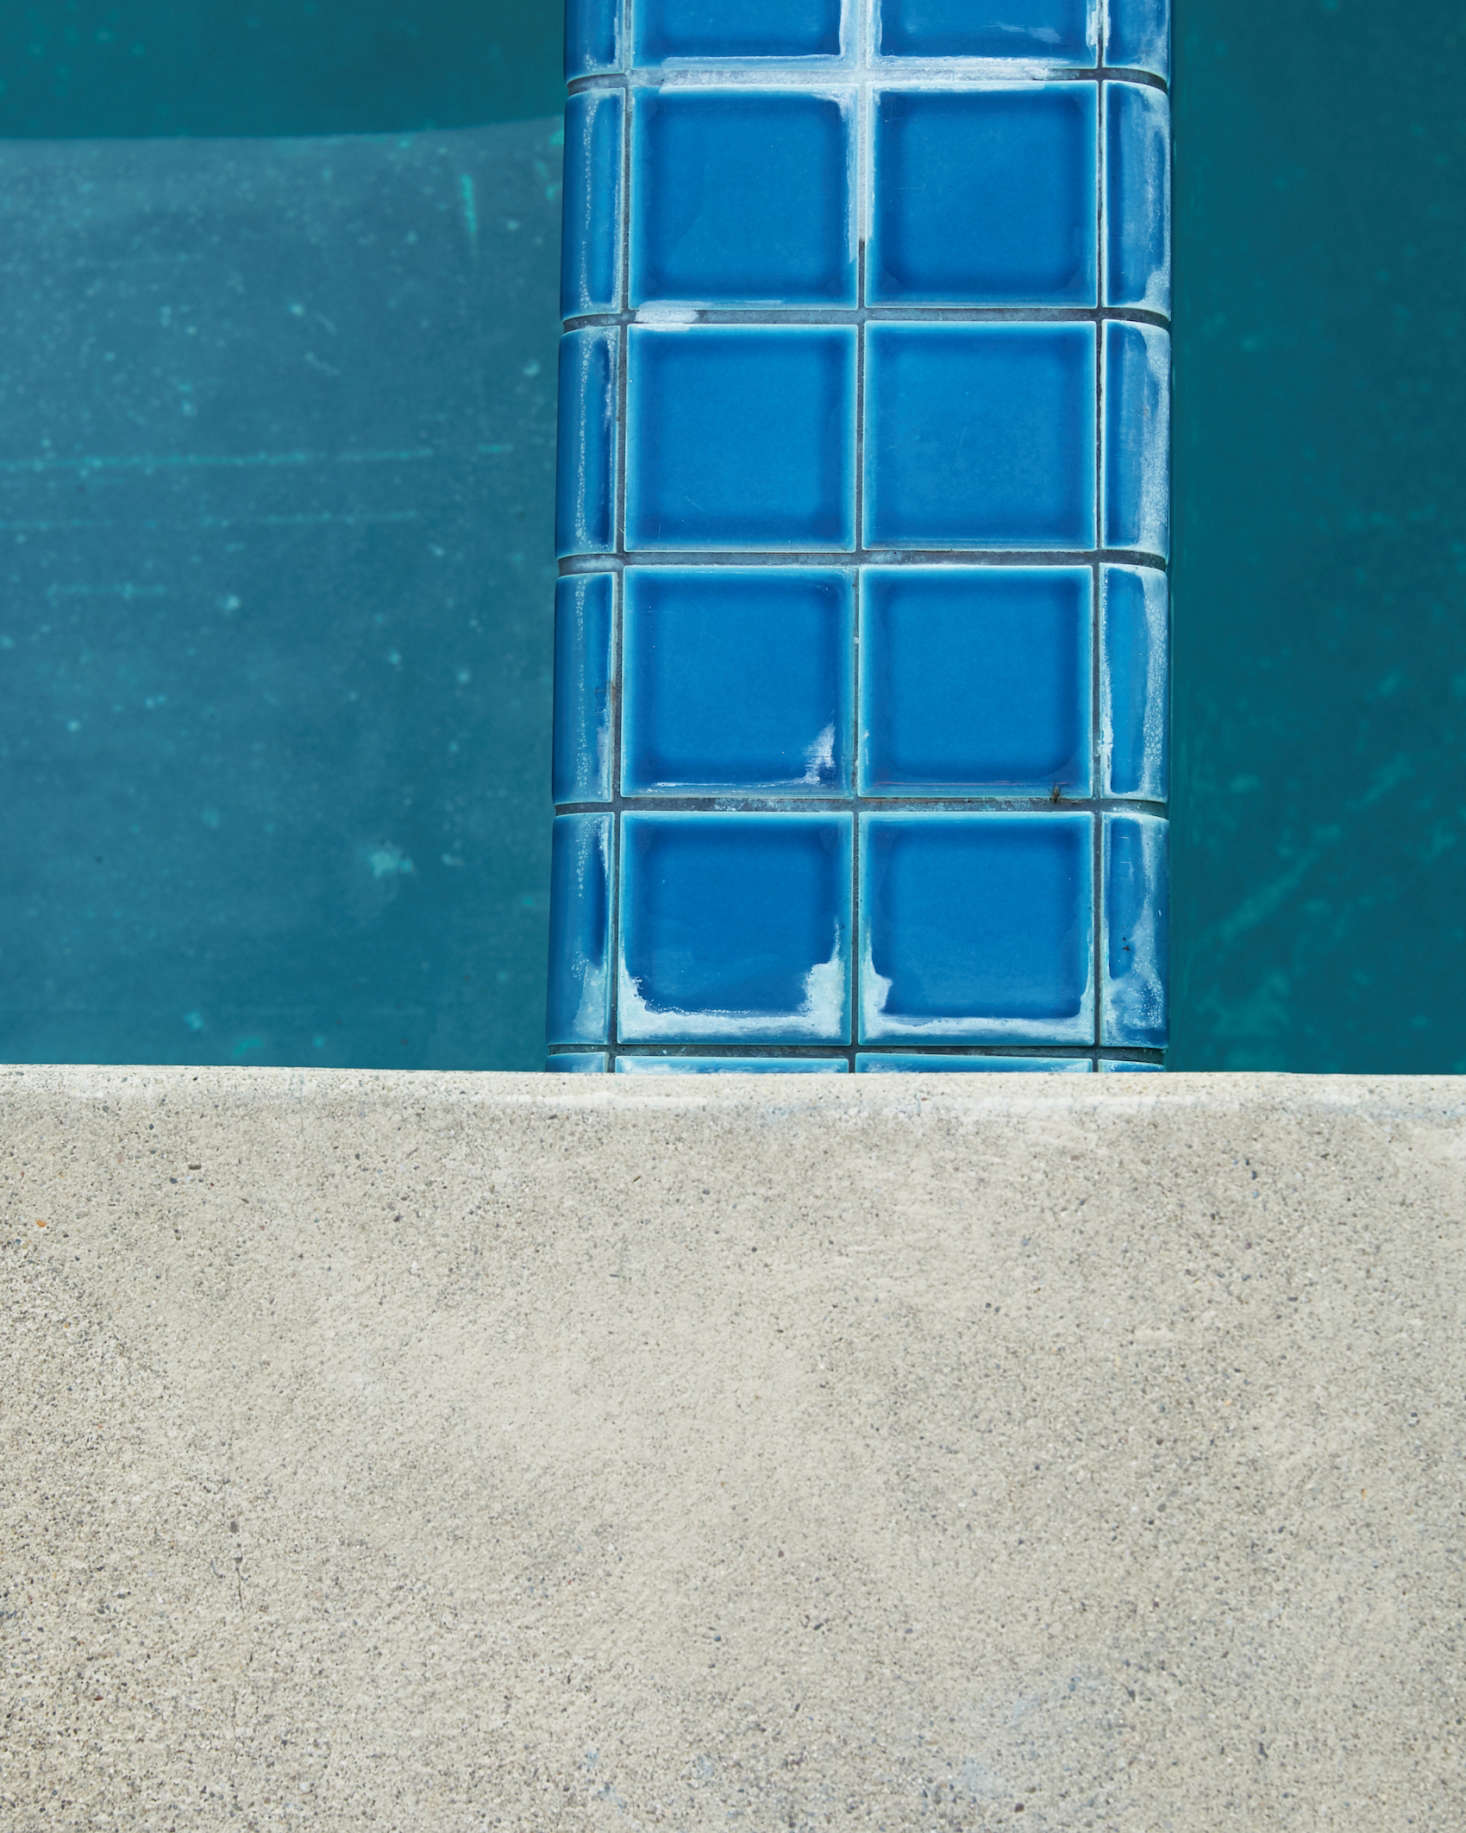 Bright turquoise tiles and a pale concrete deck define space in and around the dark teal pool.